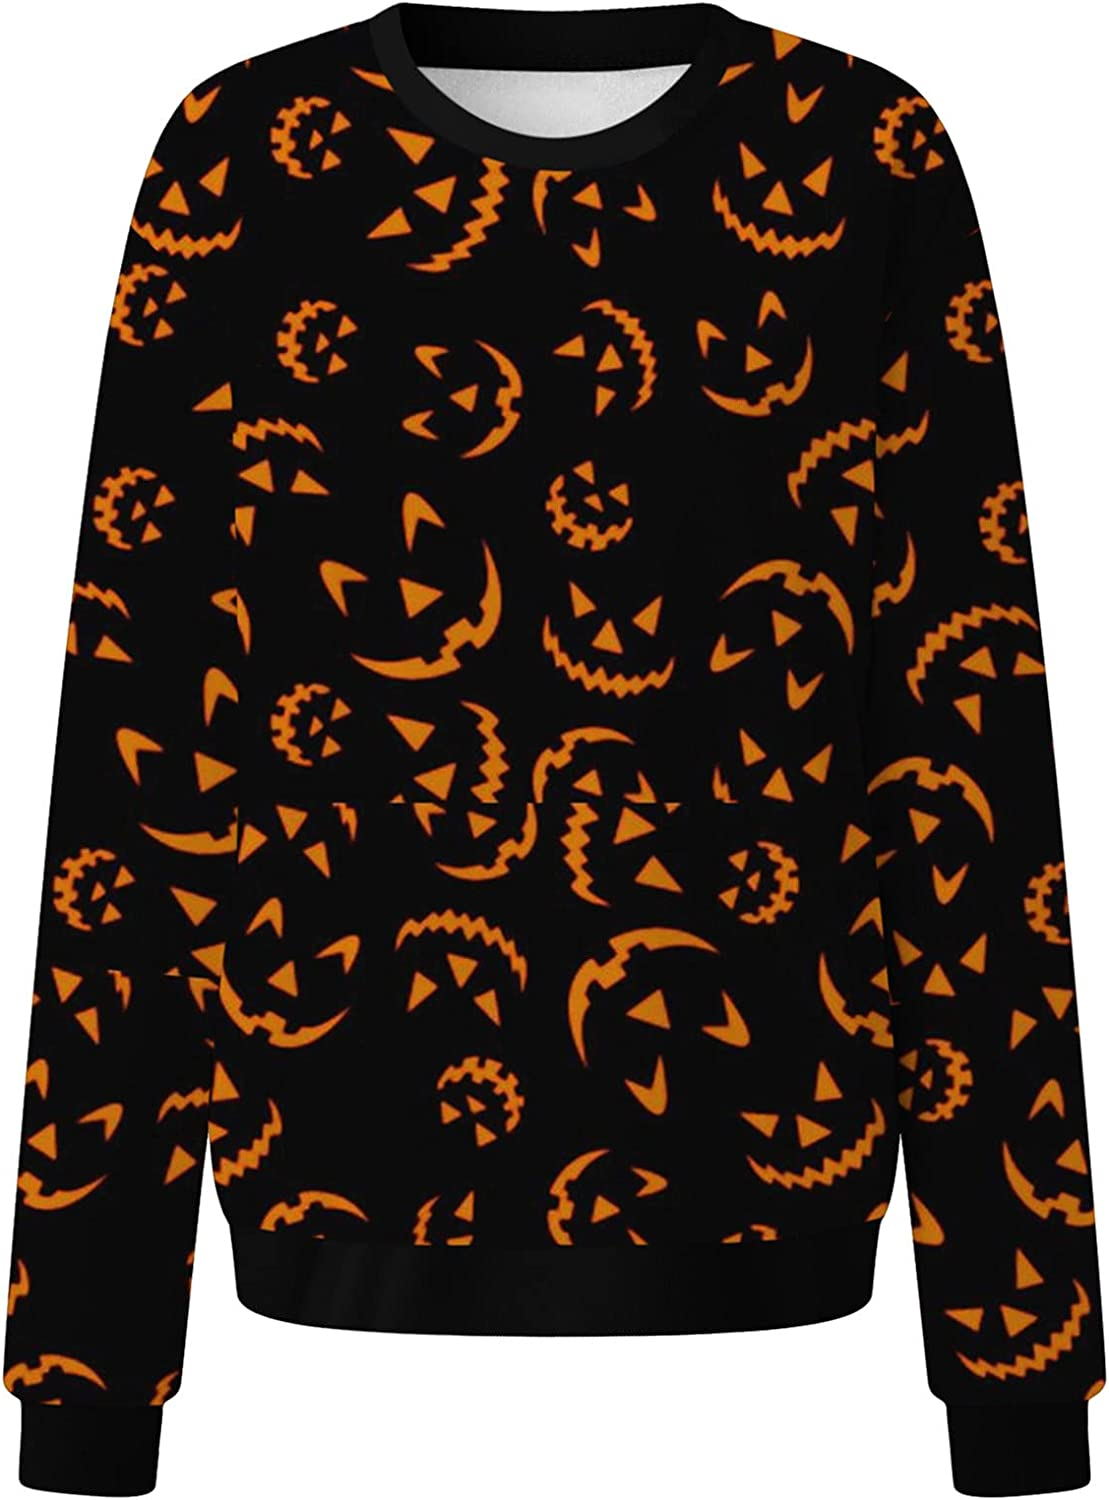 Halloween Sweatshirts for Womens,Women Winter Long Sleeve Casual Tree Printed Thermal Round Neck Pullover Tops Shirt